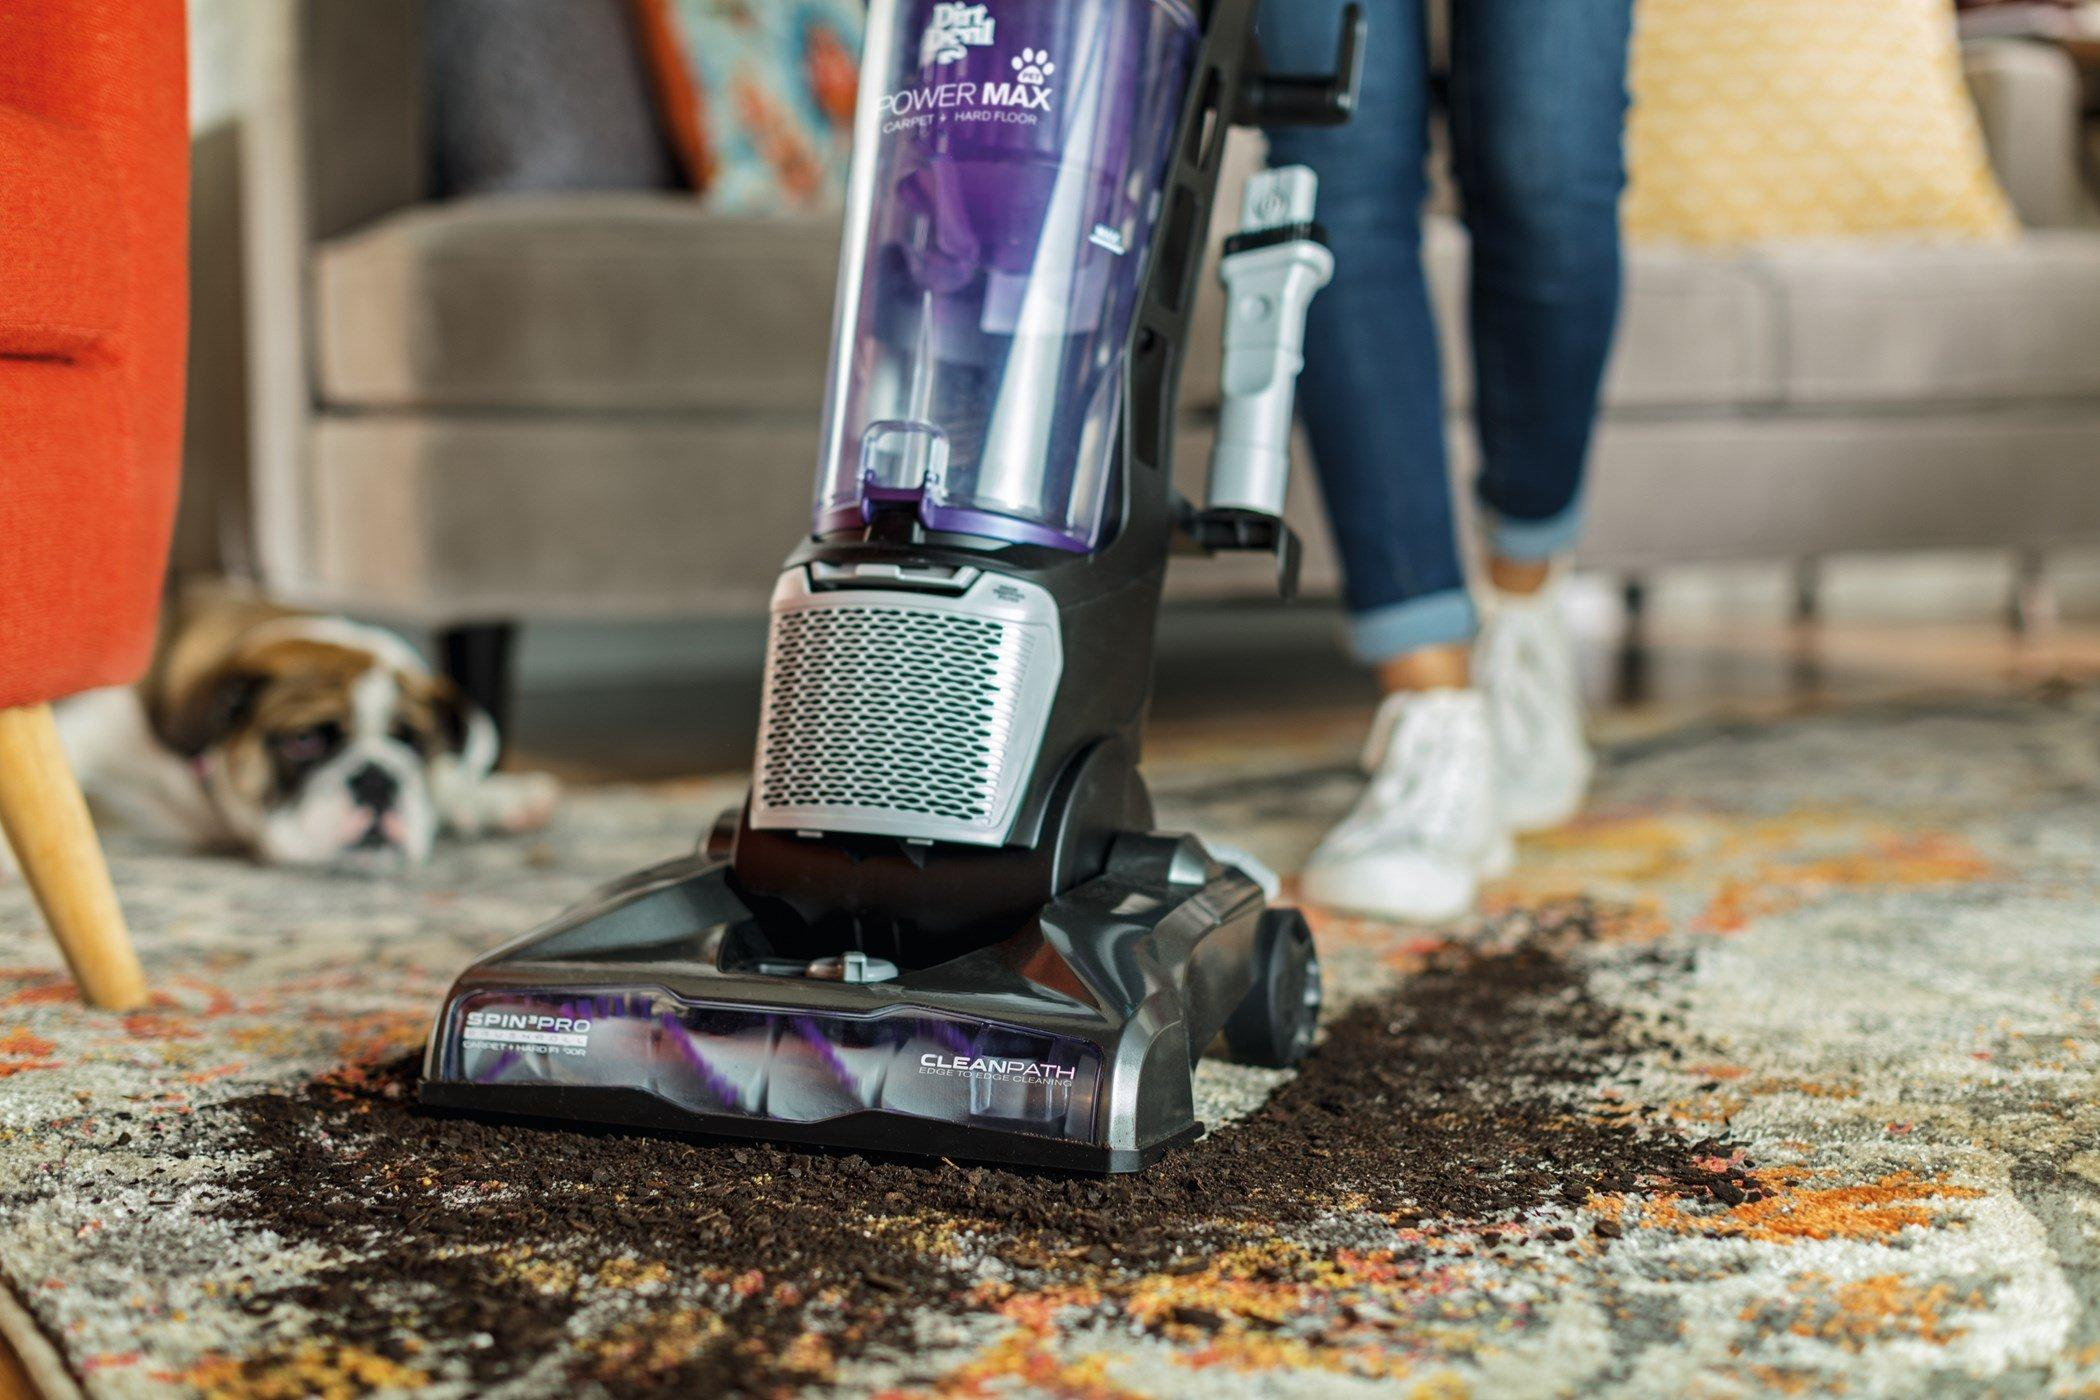 Power Max Pet Upright Vacuum4